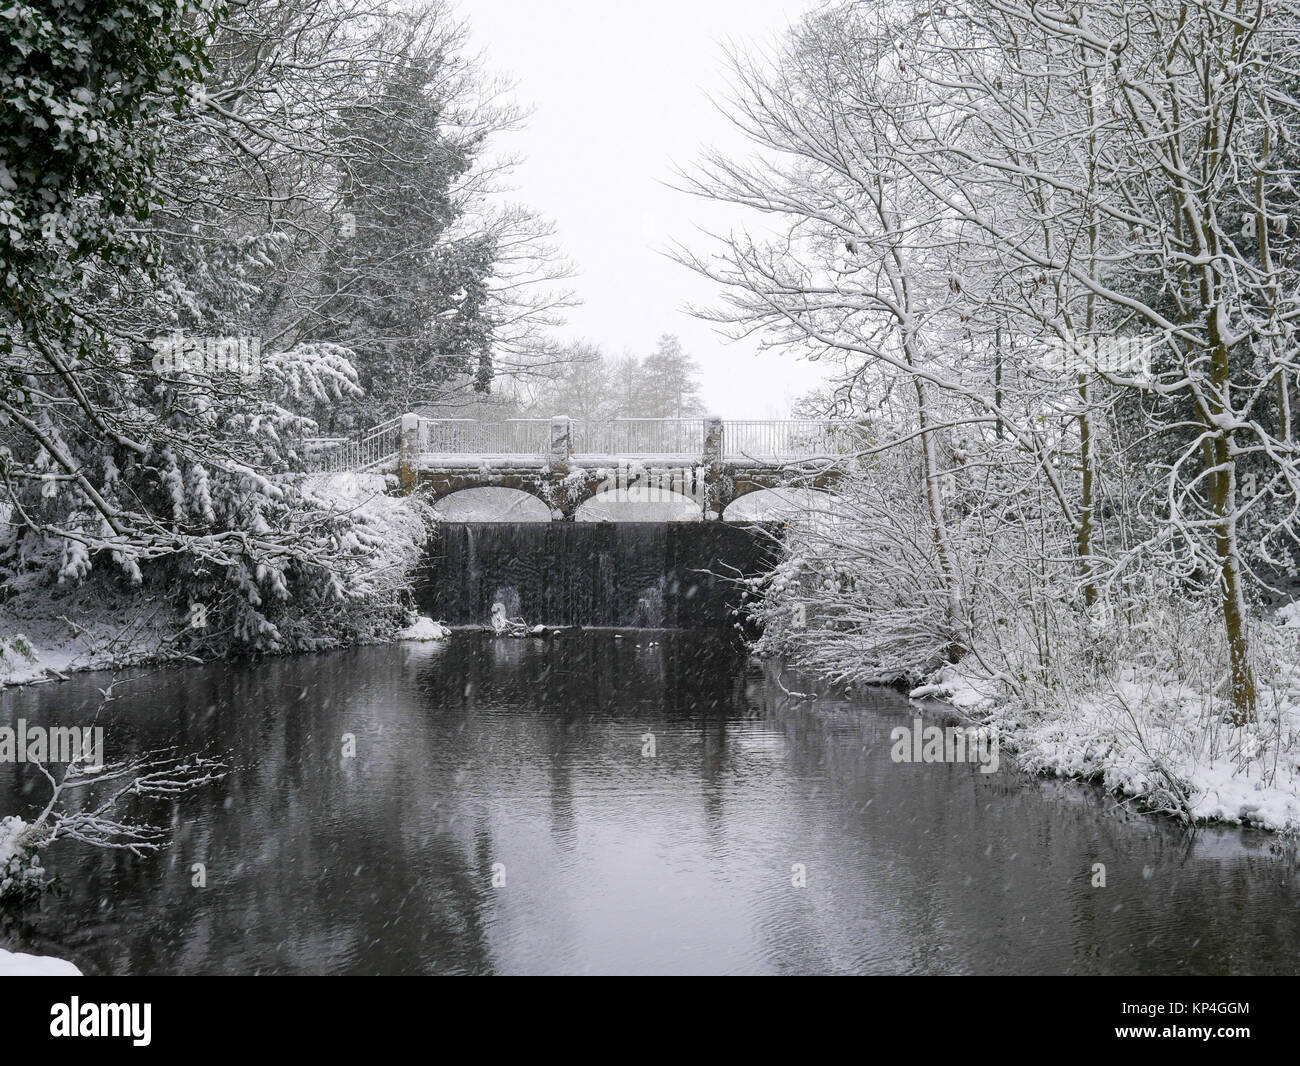 Wintry scene: Bridge over the River Dove, on a snowy day in the village of Rolleston on Dove, Staffordshire - Stock Image